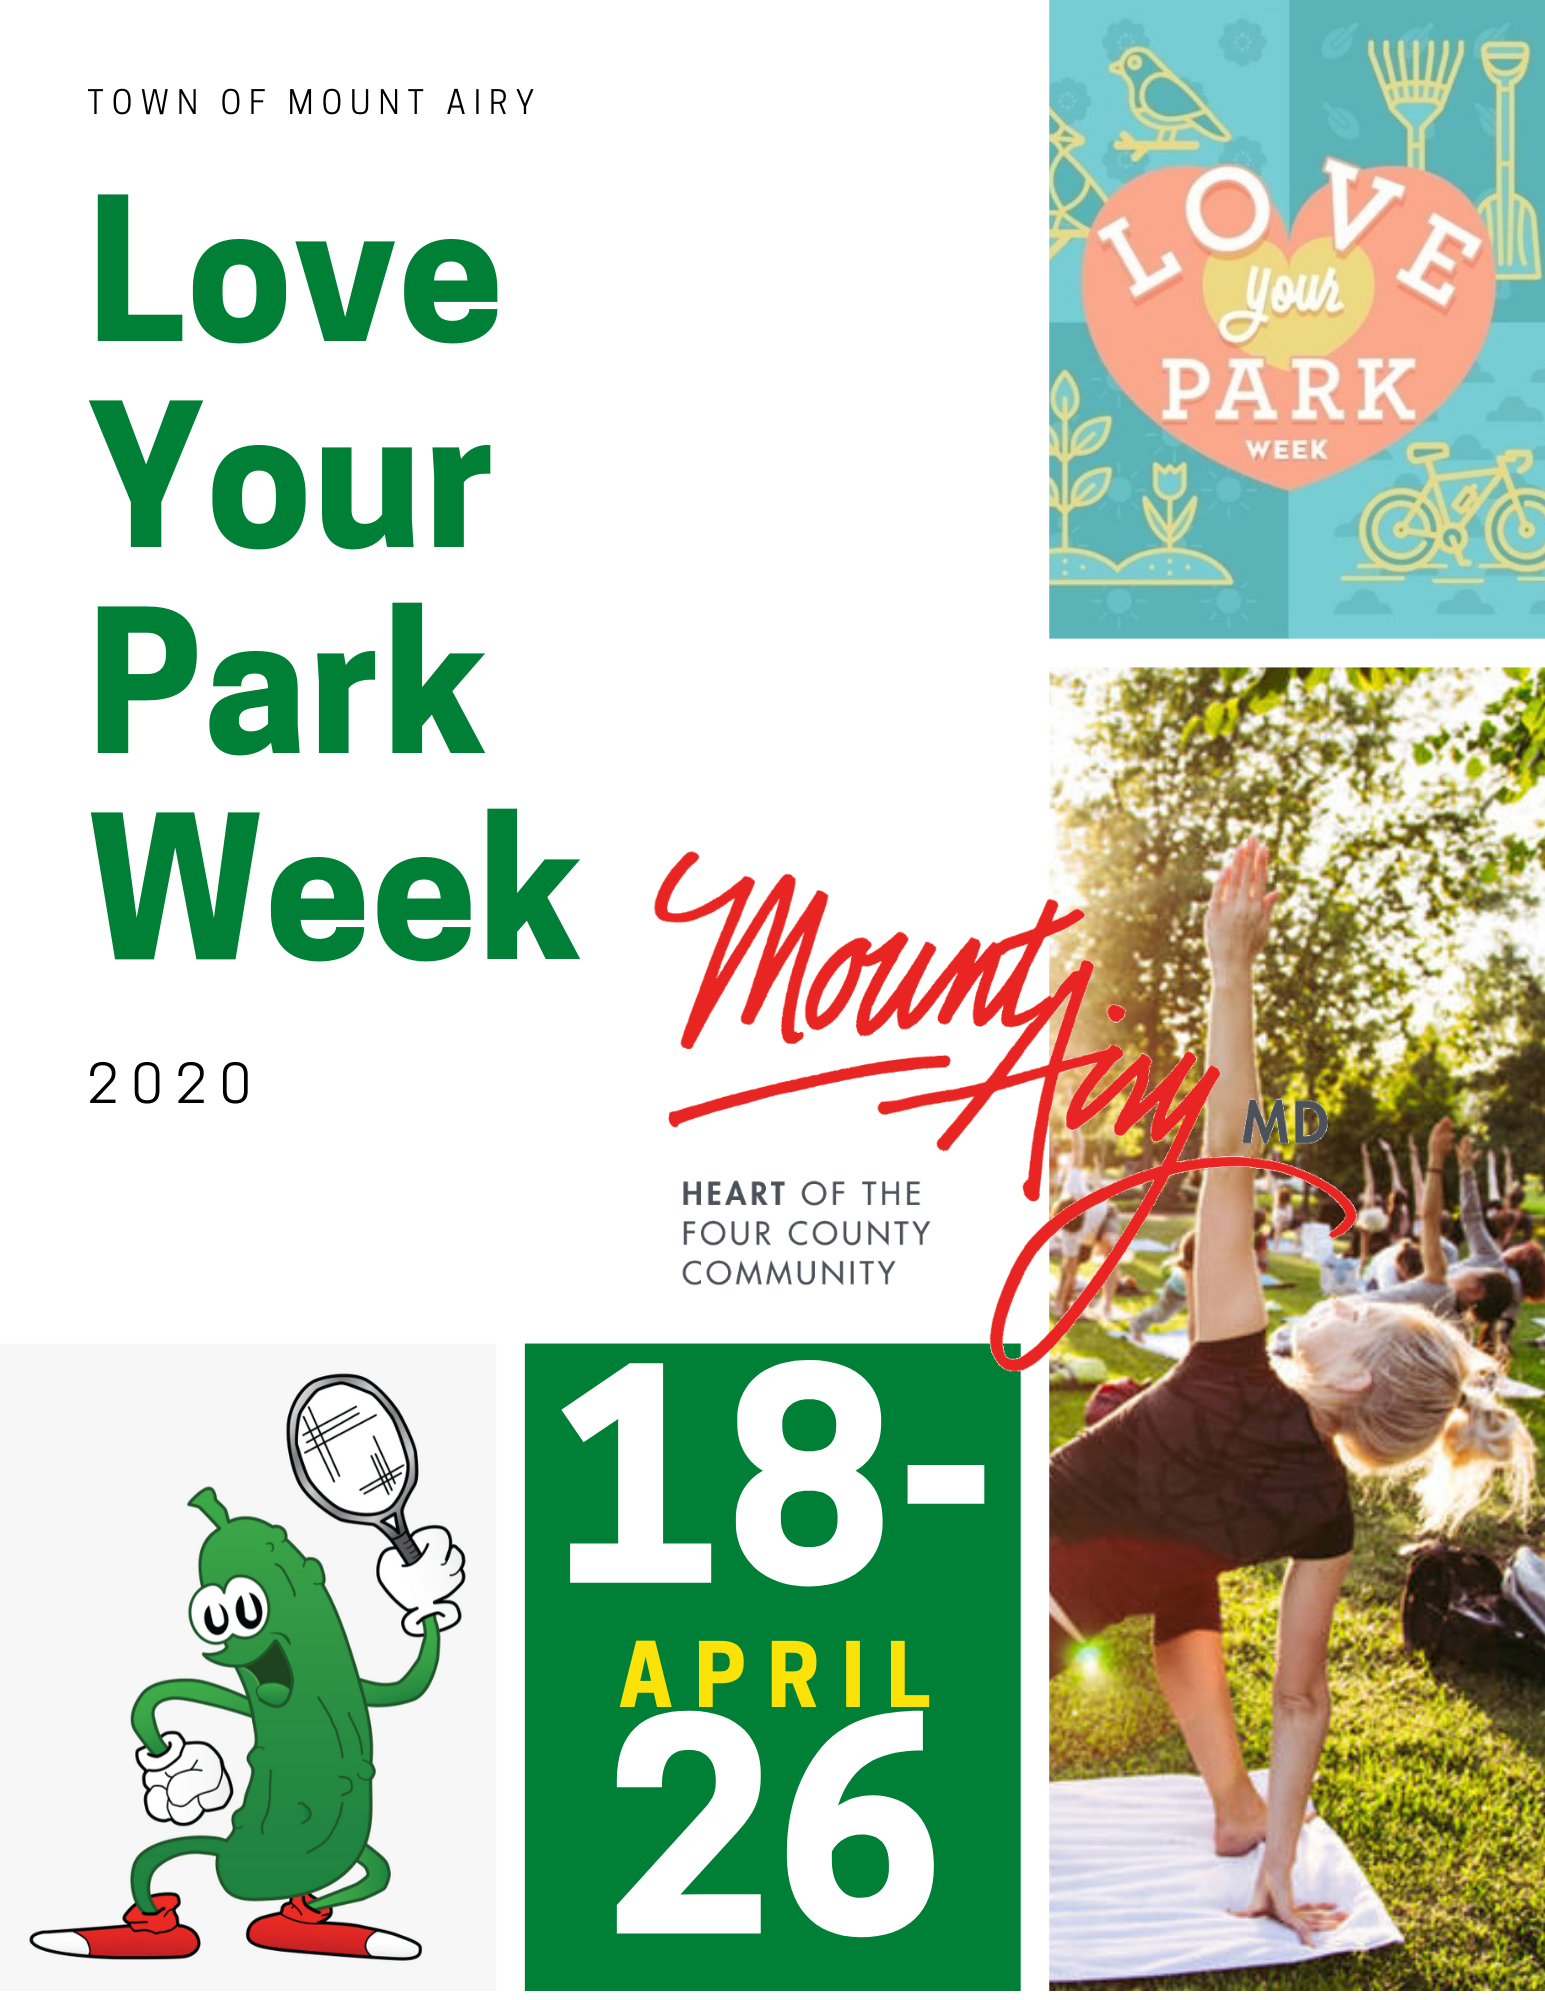 Love Your Park Week 2020